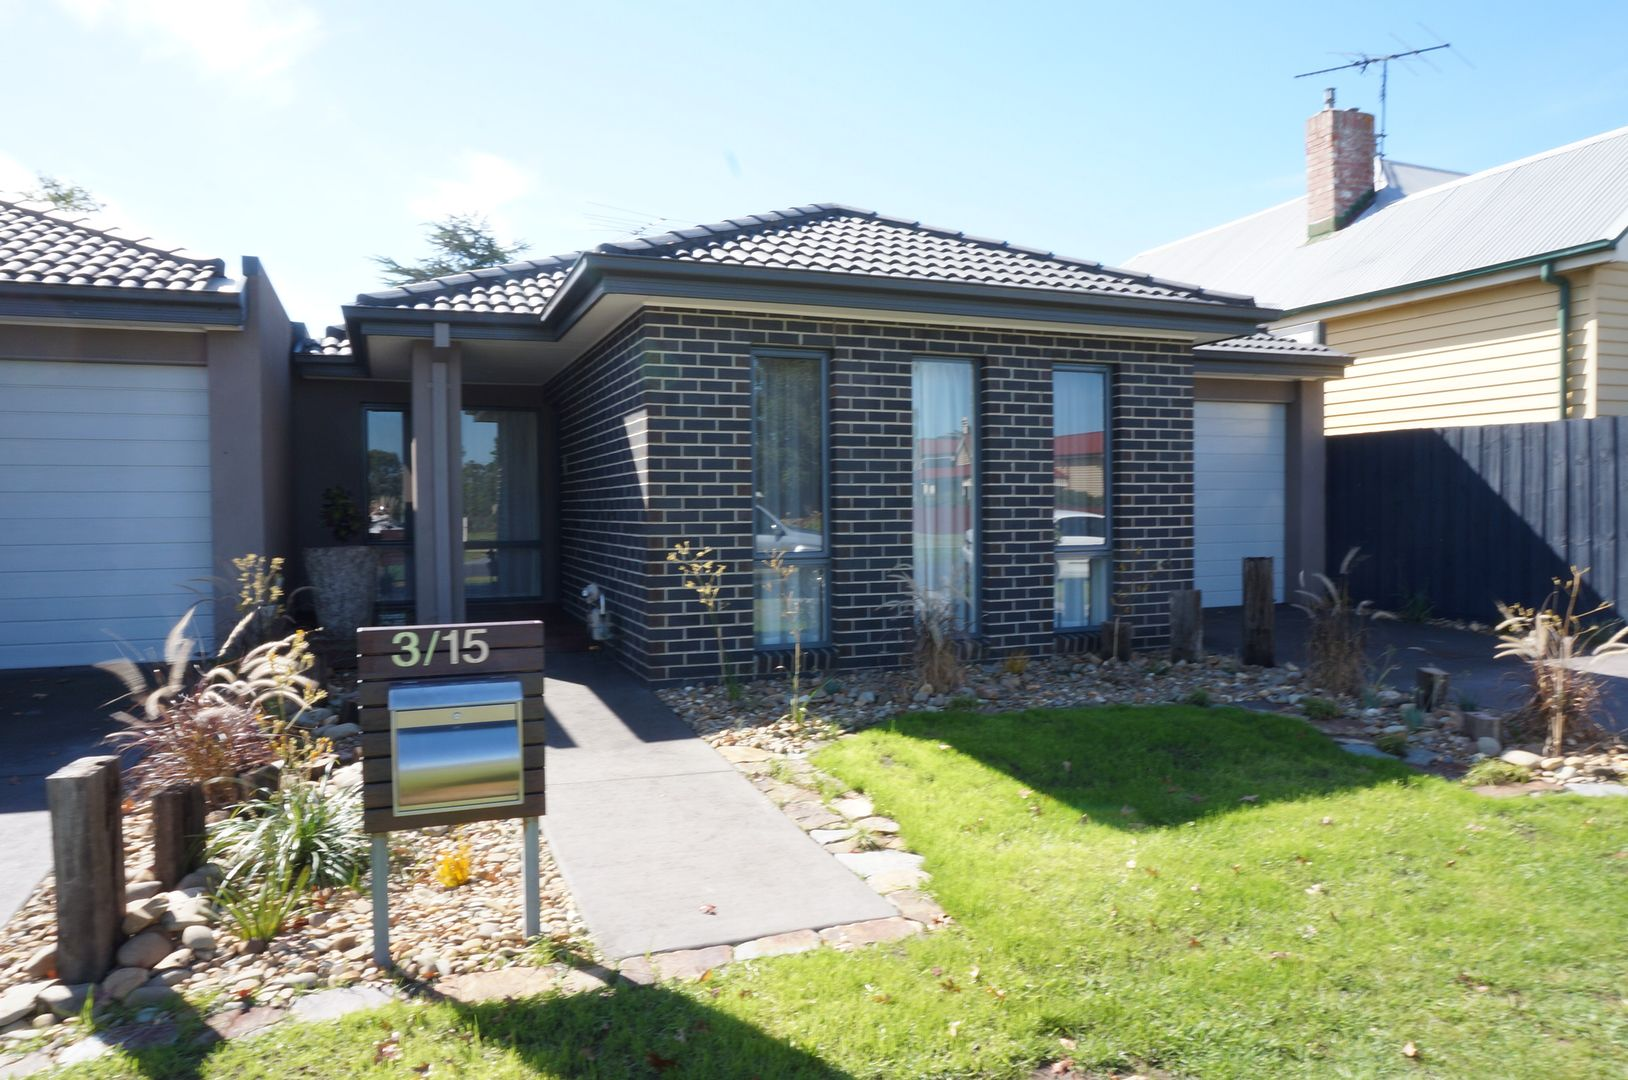 3/15 Beaconsfield Avenue, Beaconsfield VIC 3807, Image 0